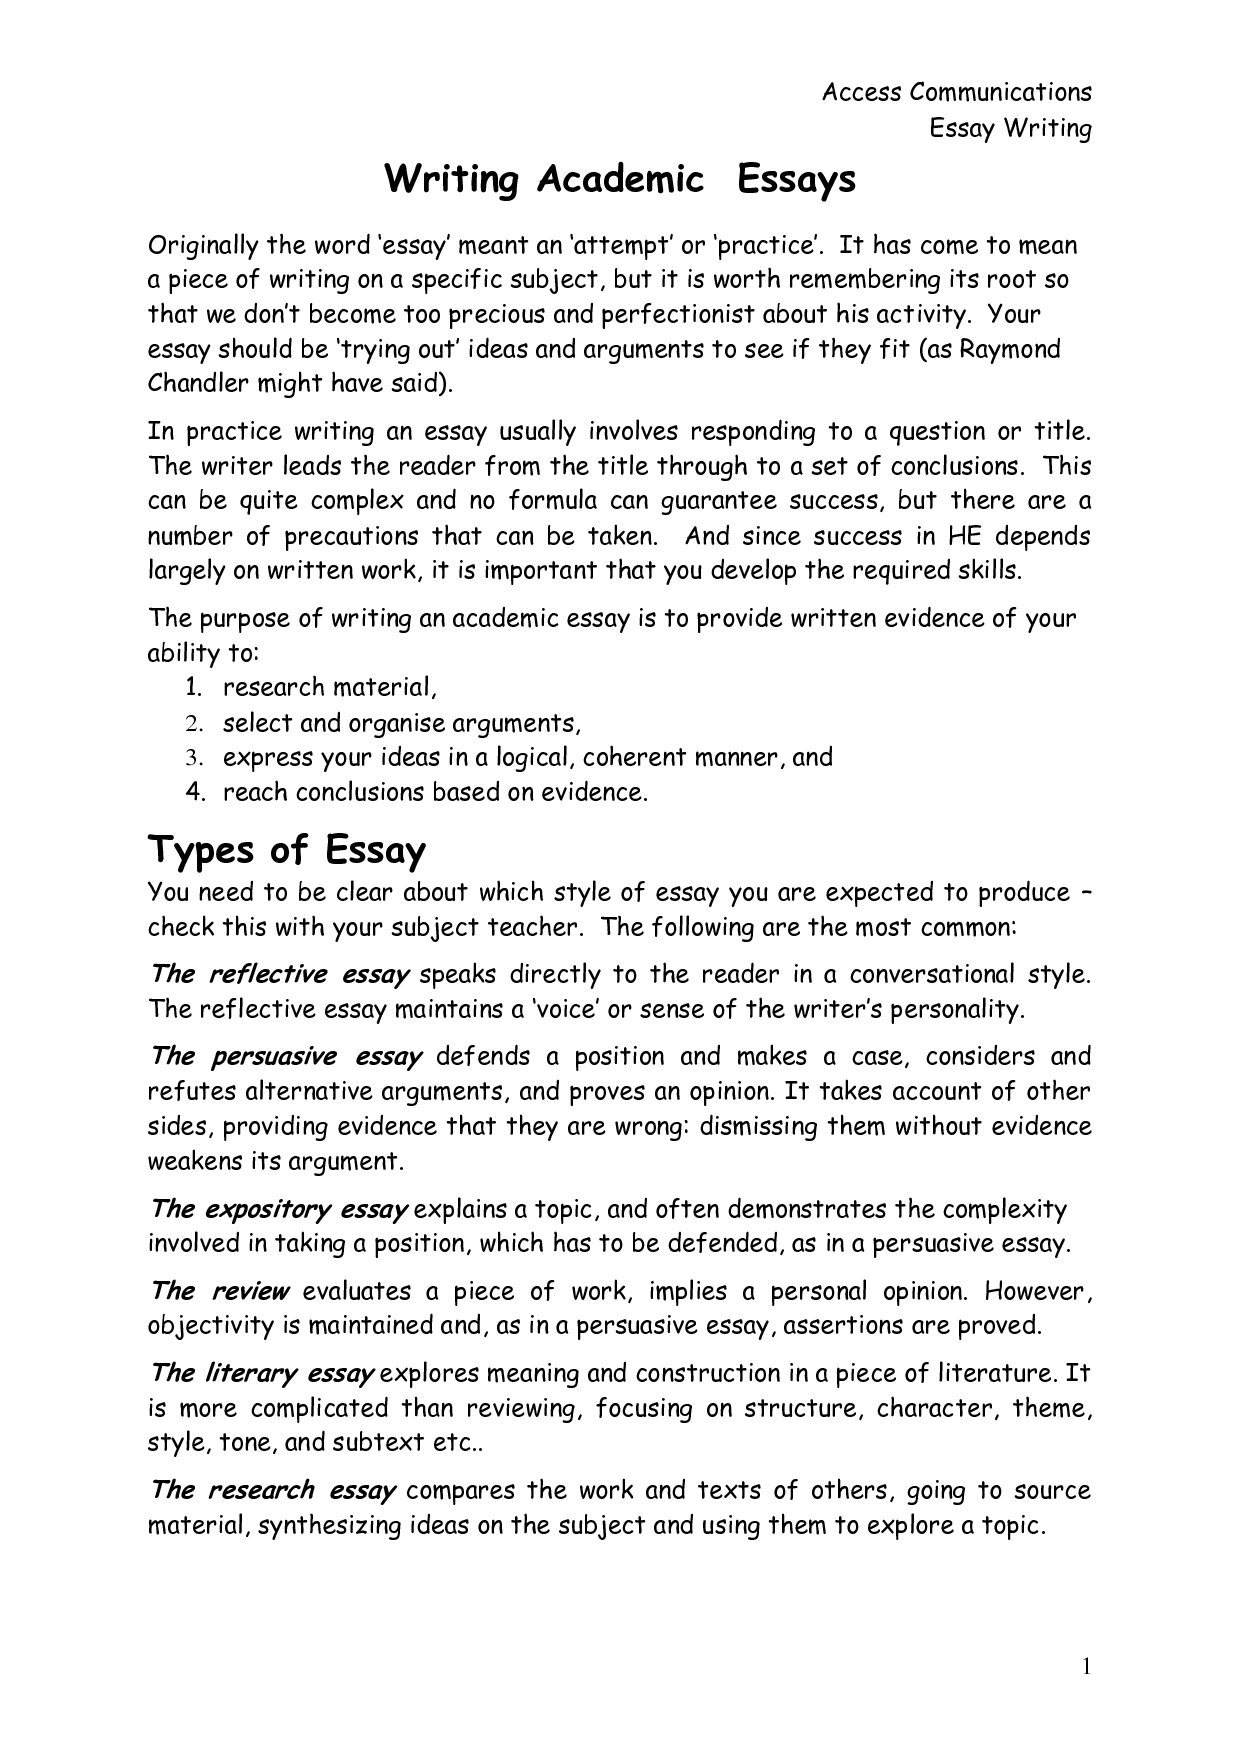 019 Write My Essay For Me Example Surprising App Free Uk Full